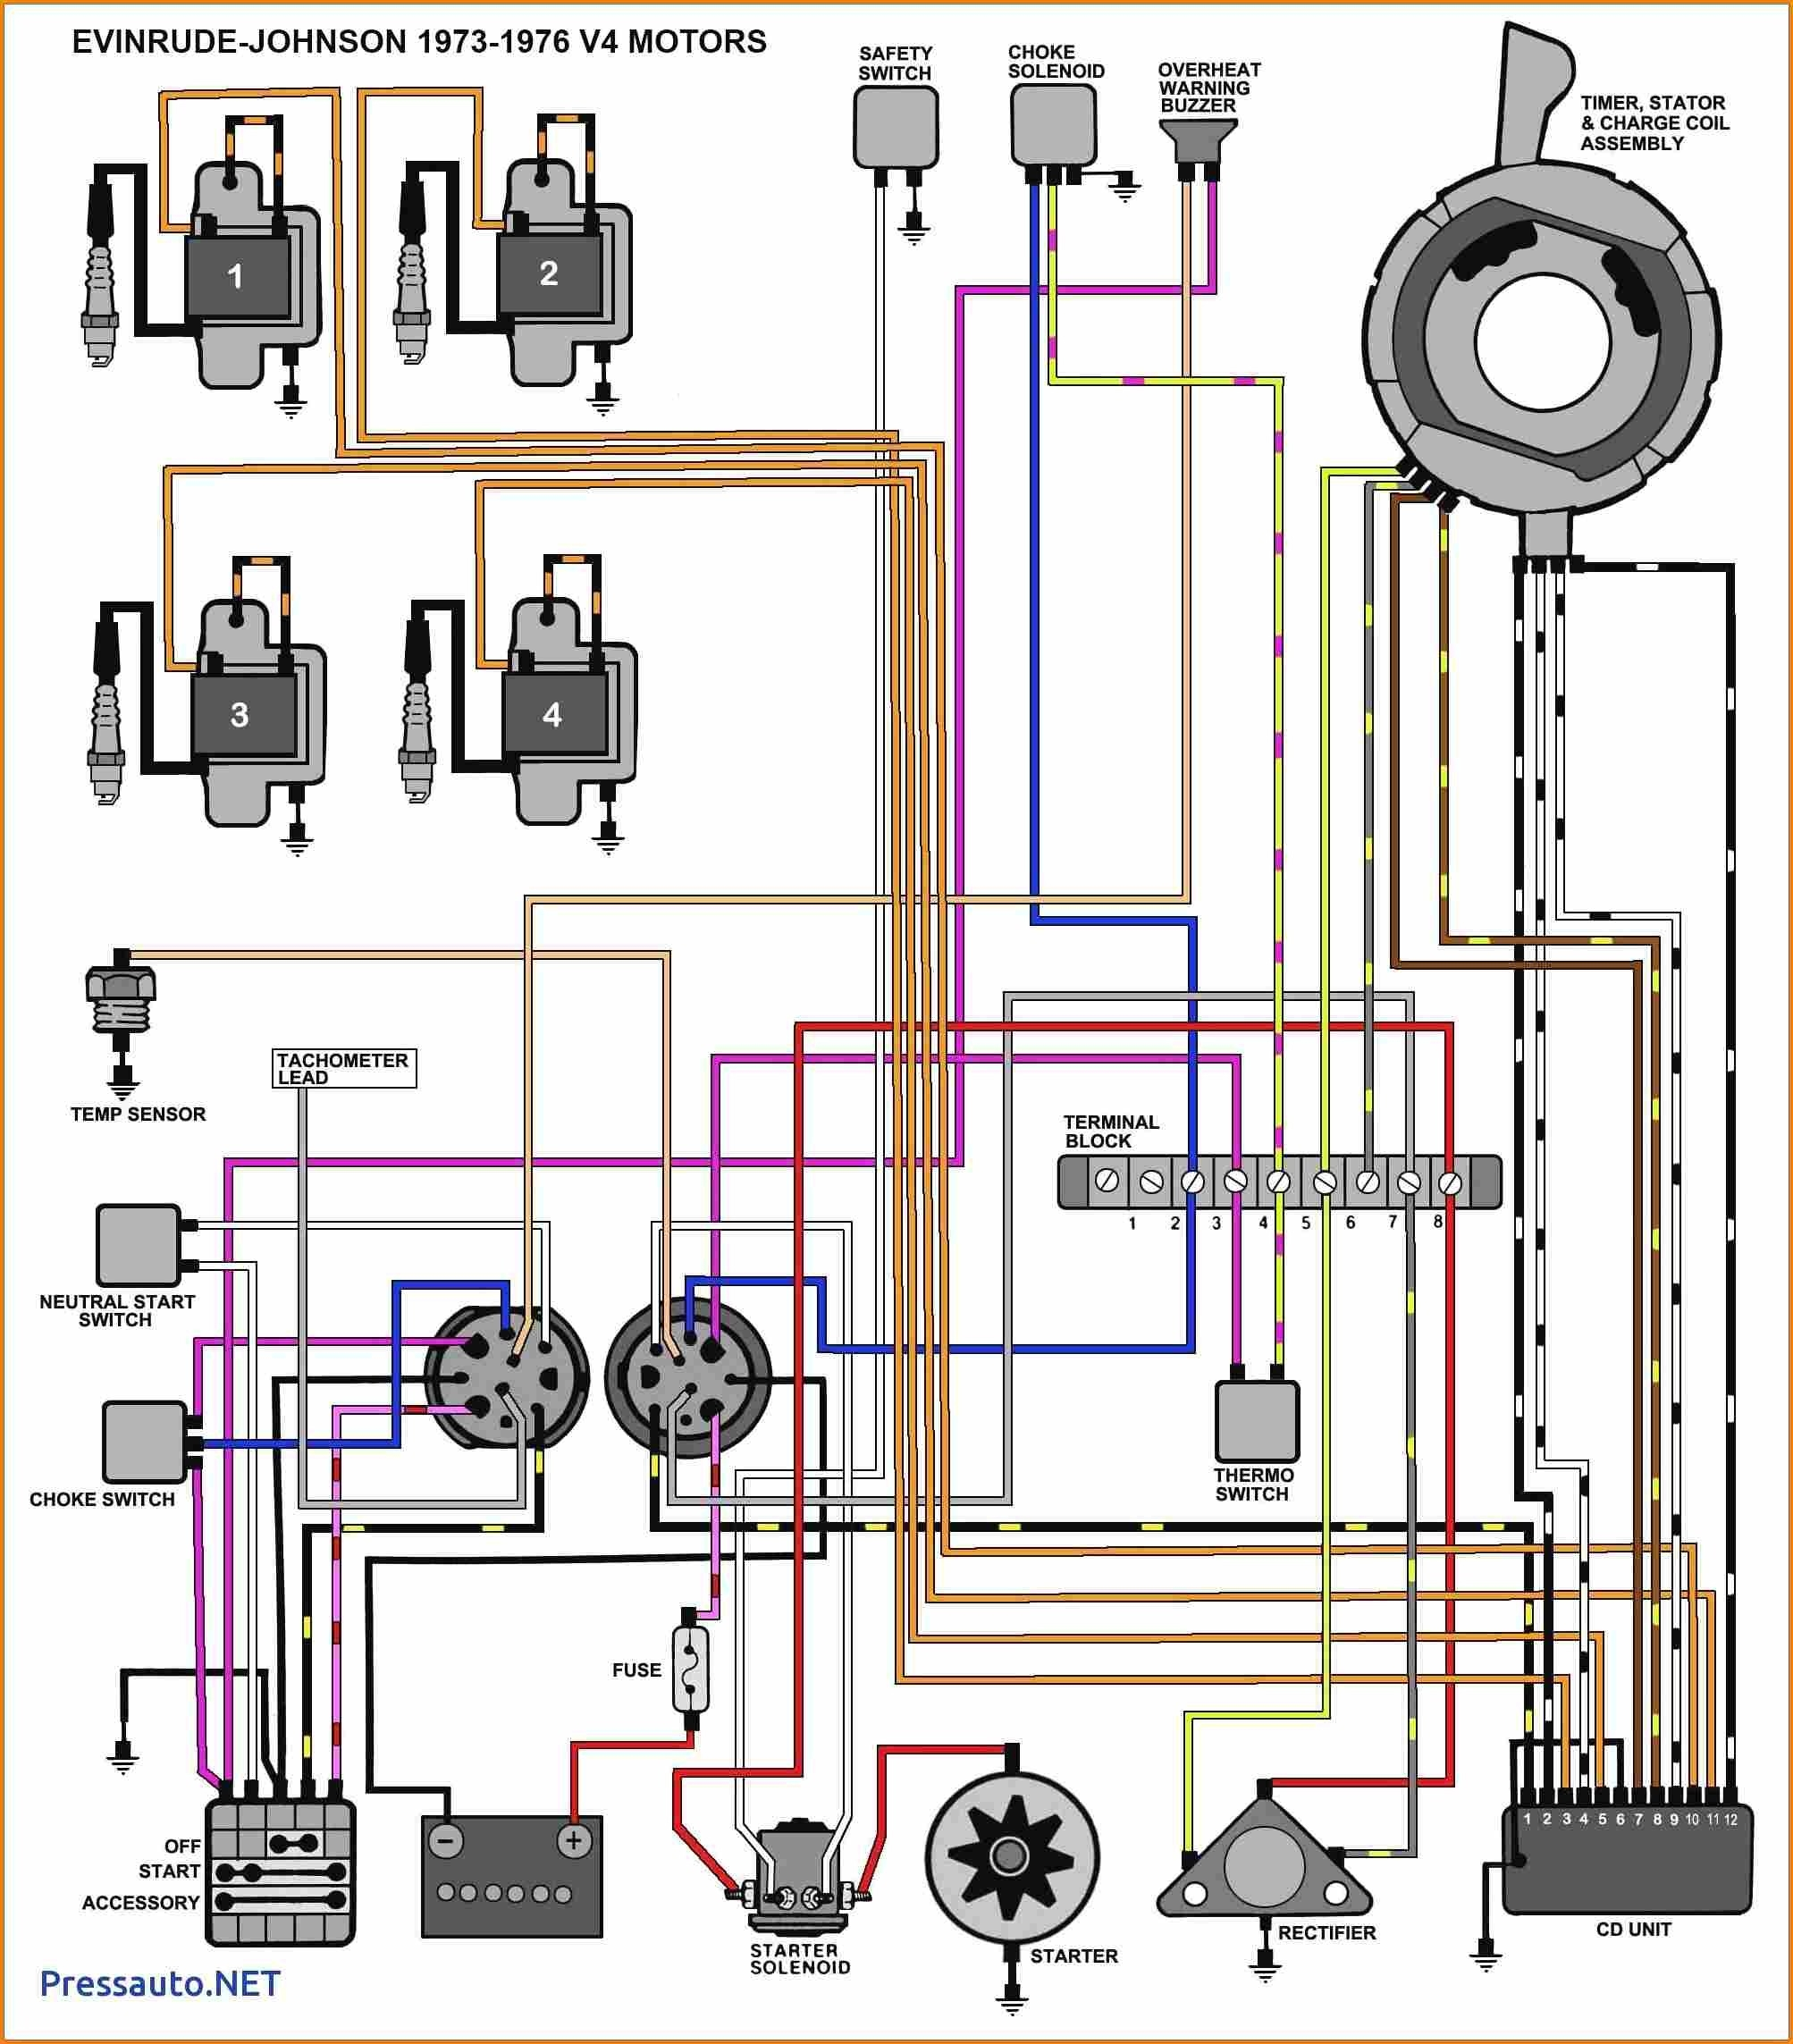 Mercruiser 165 Wiring Diagram - Get Rid Of Wiring Diagram ... on 3.0 mercruiser solenoid, 3.0 mercruiser fittings, 3.0 mercruiser air cleaner, 3.0 mercruiser harmonic balancer, 3.0 mercruiser fuel line, 3.0 mercruiser sensor, 3.0 mercruiser coil,